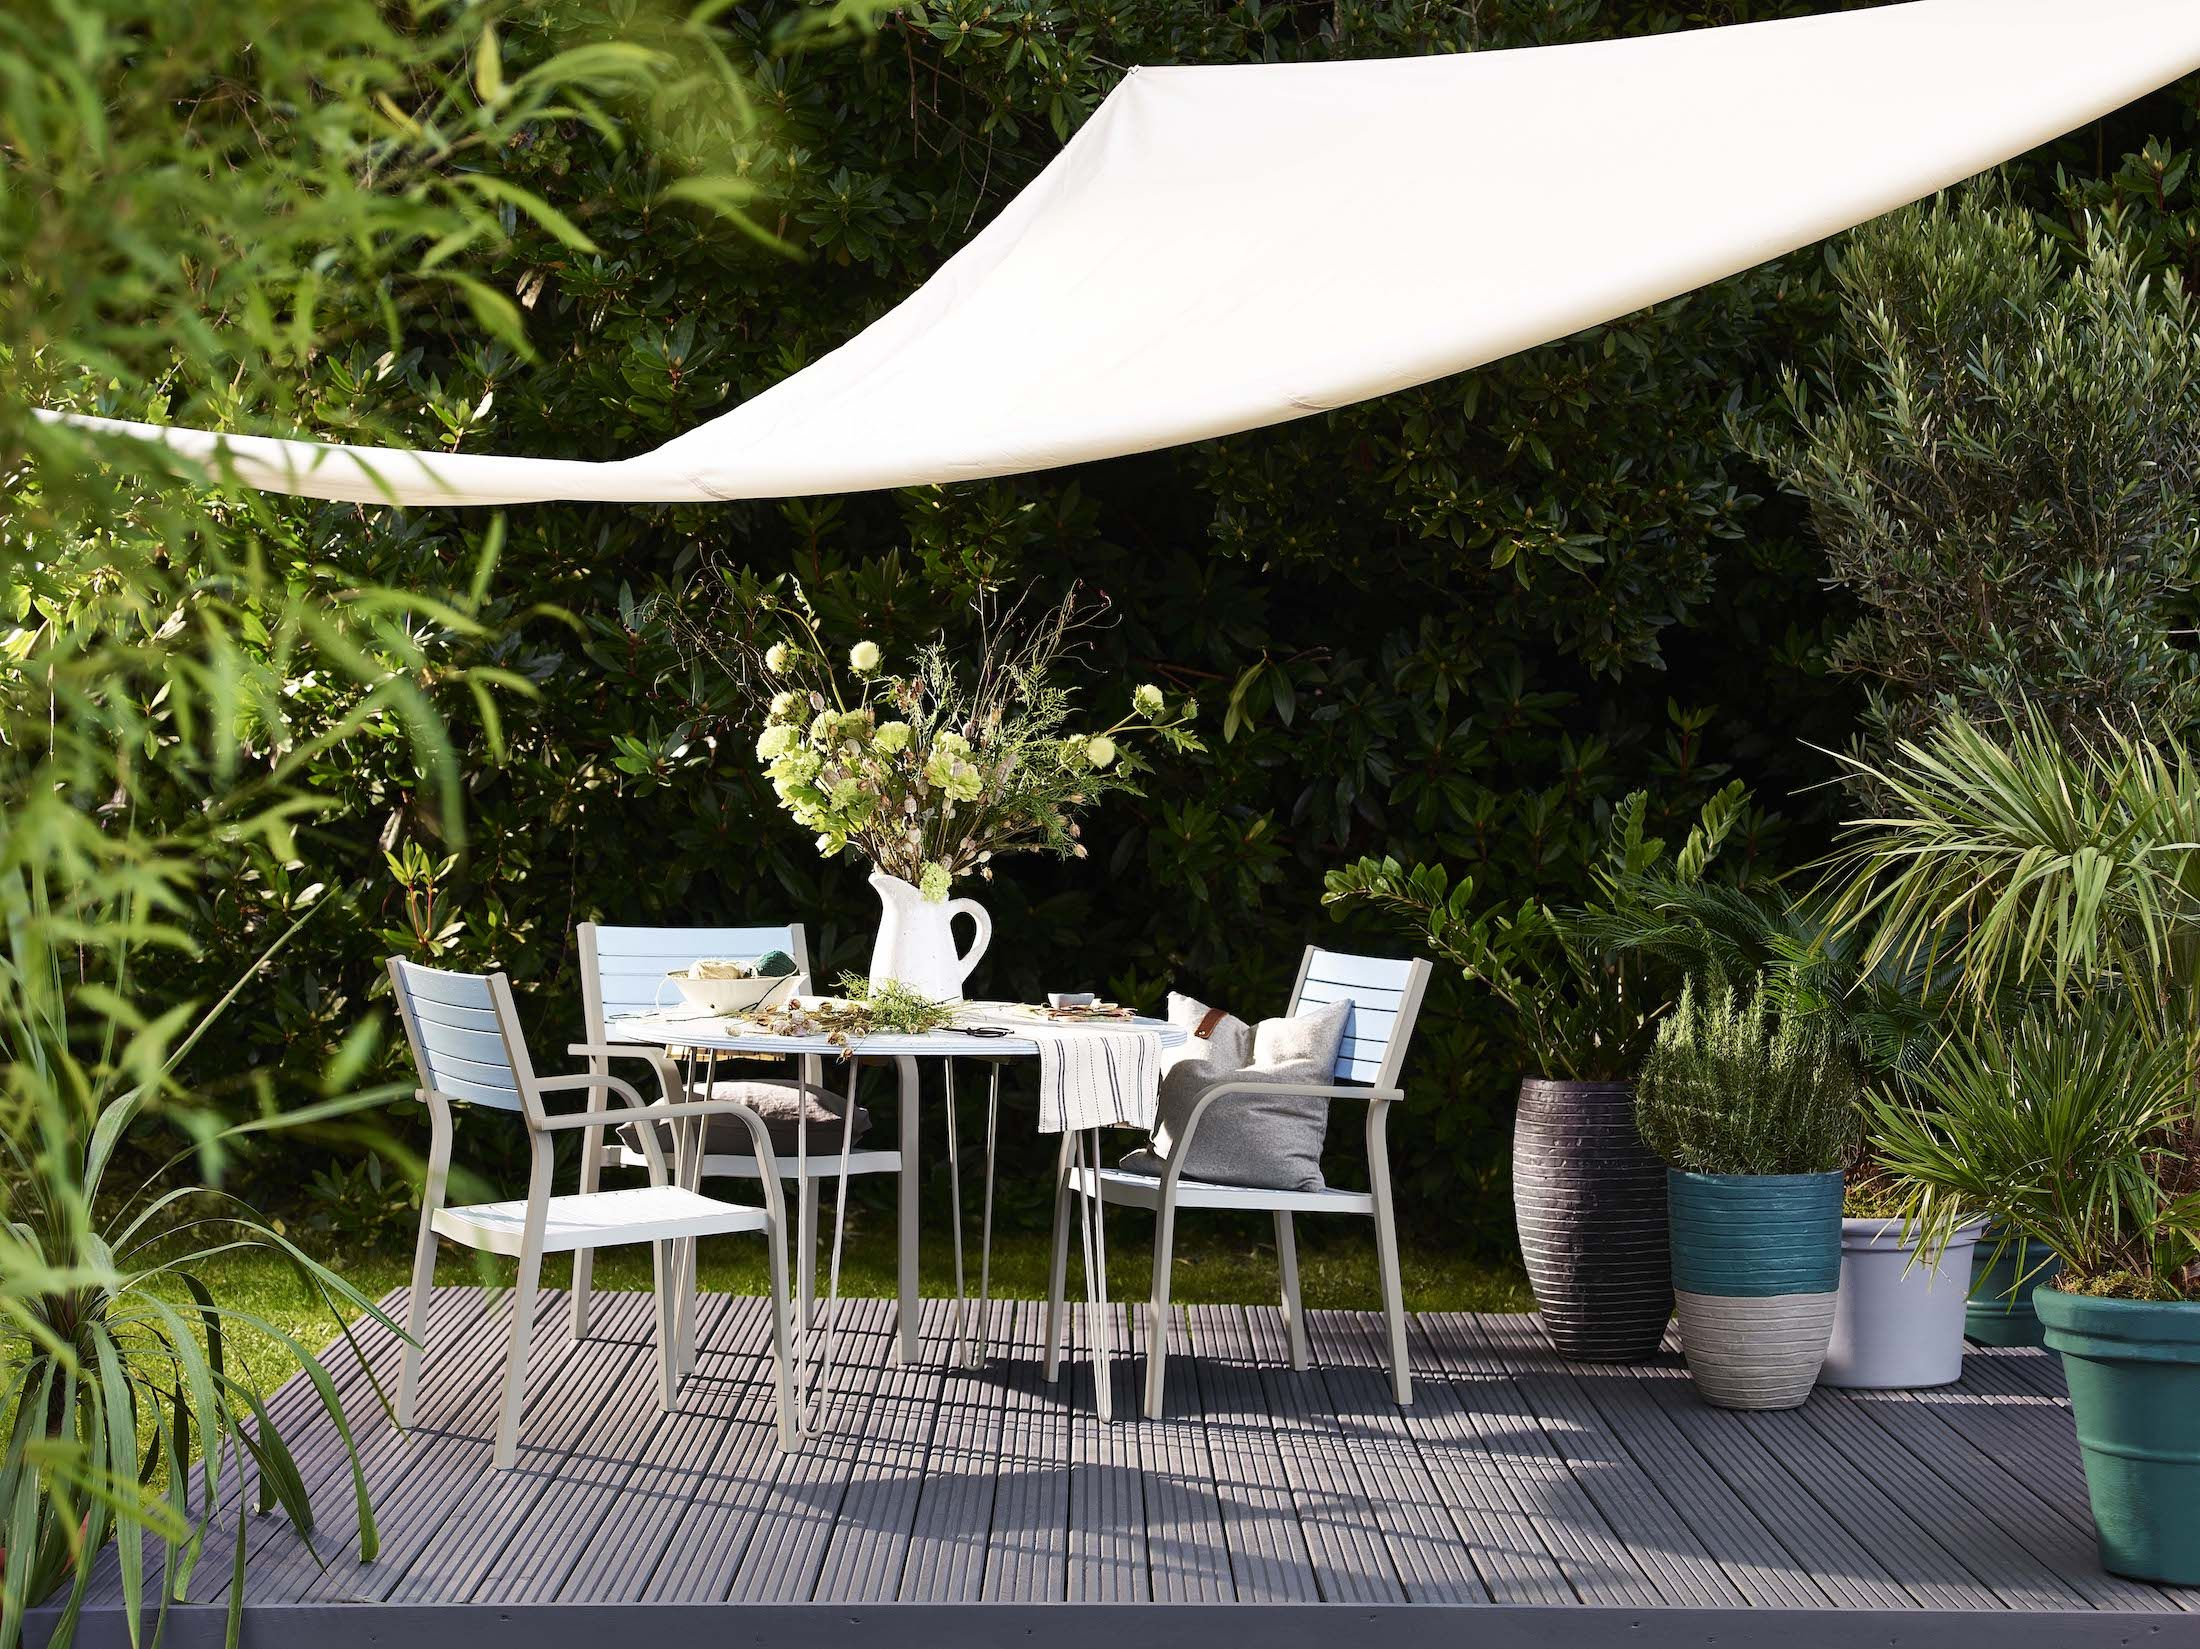 15 garden design ideas to make the best of your outdoor space